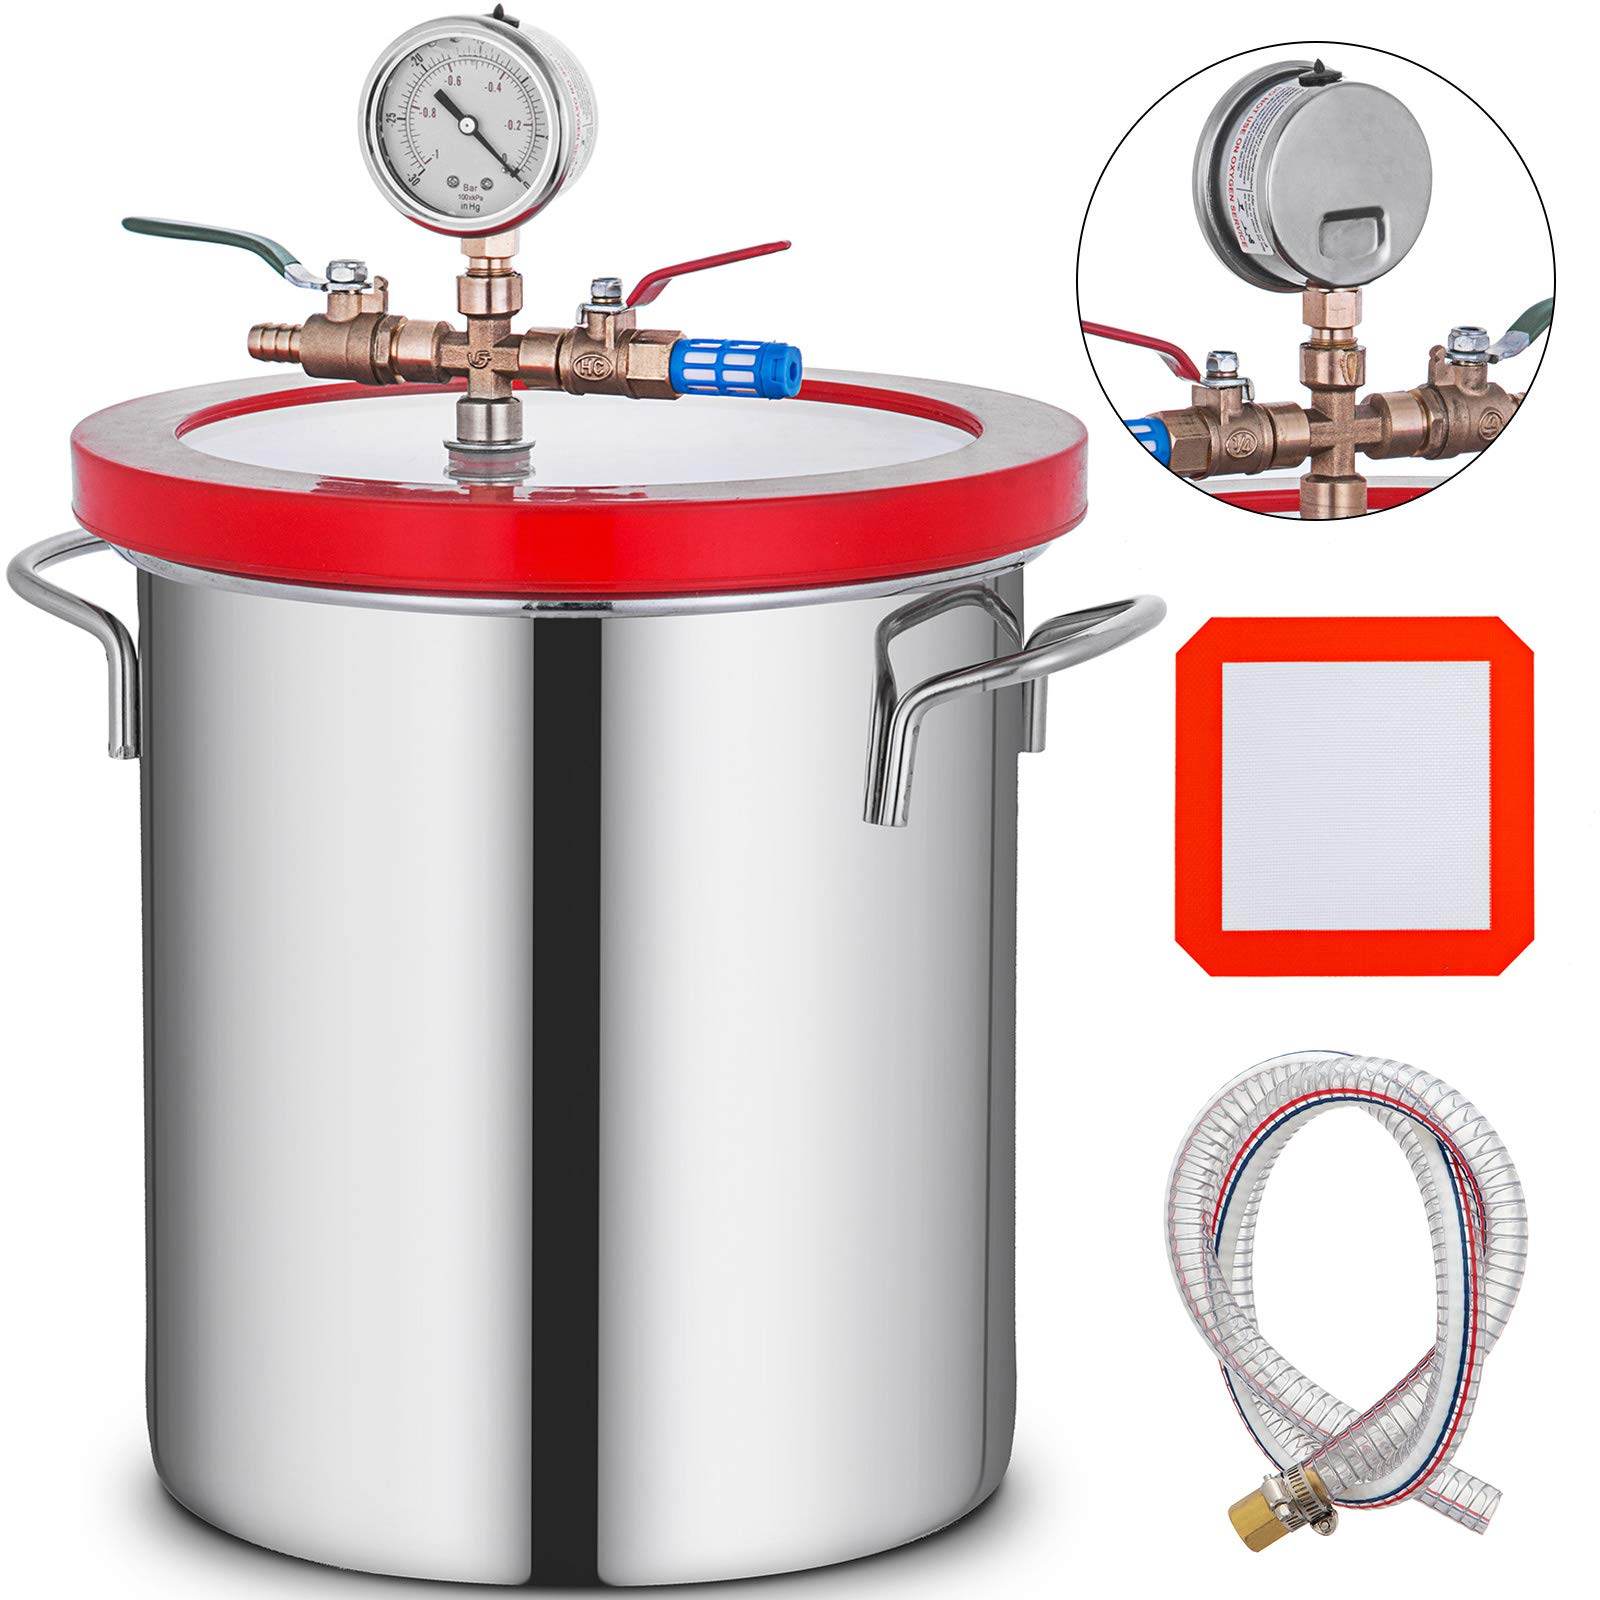 Bestauto 5 Gallon Vacuum Chamber Stainless Steel Vacuum Degassing Chamber 160F Acrylic Lid Kit by Best In Auto